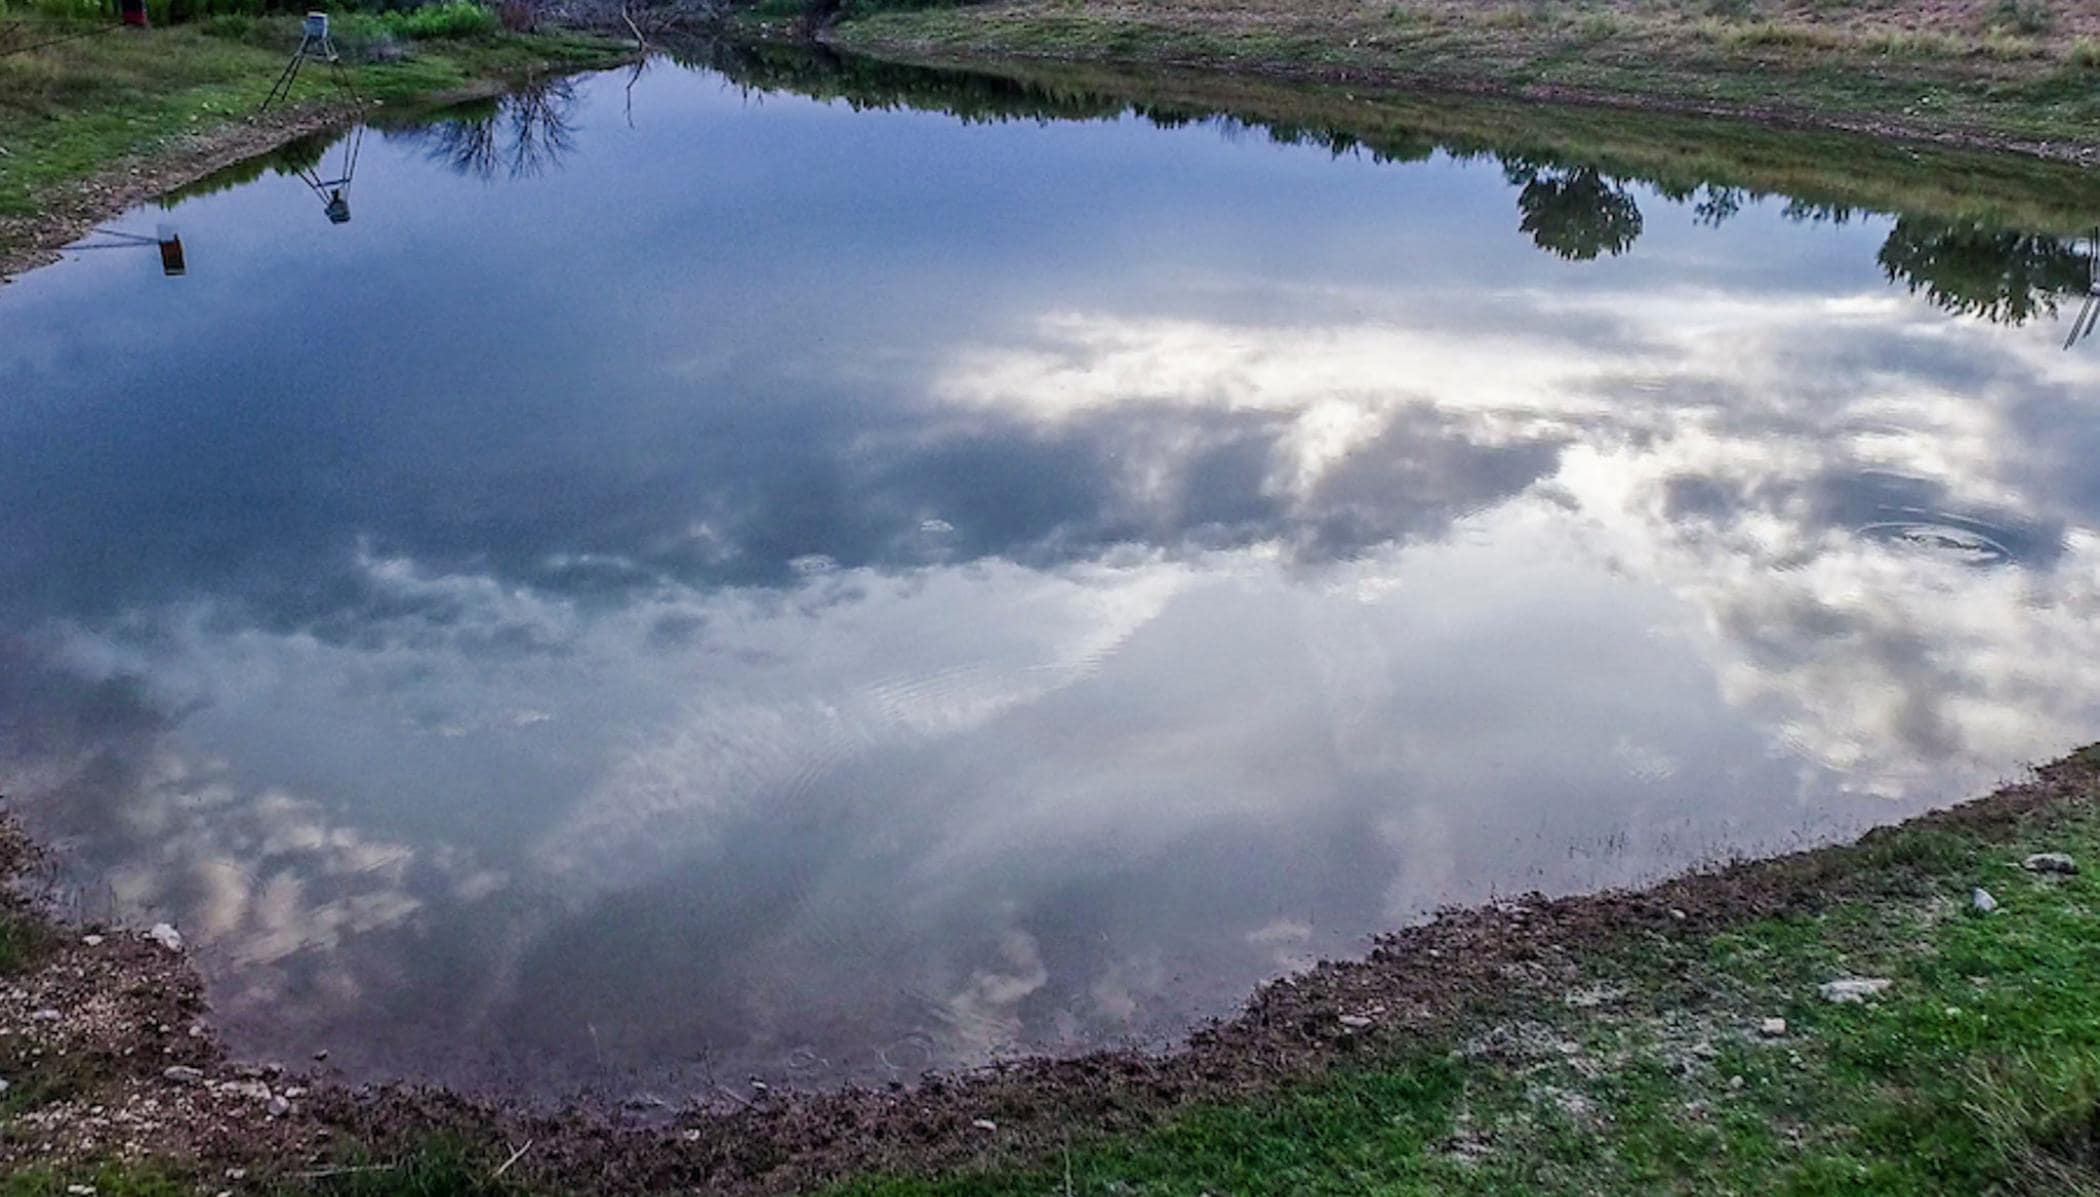 calm pond reflecting clouds and blue sky at saddle ridge ranch